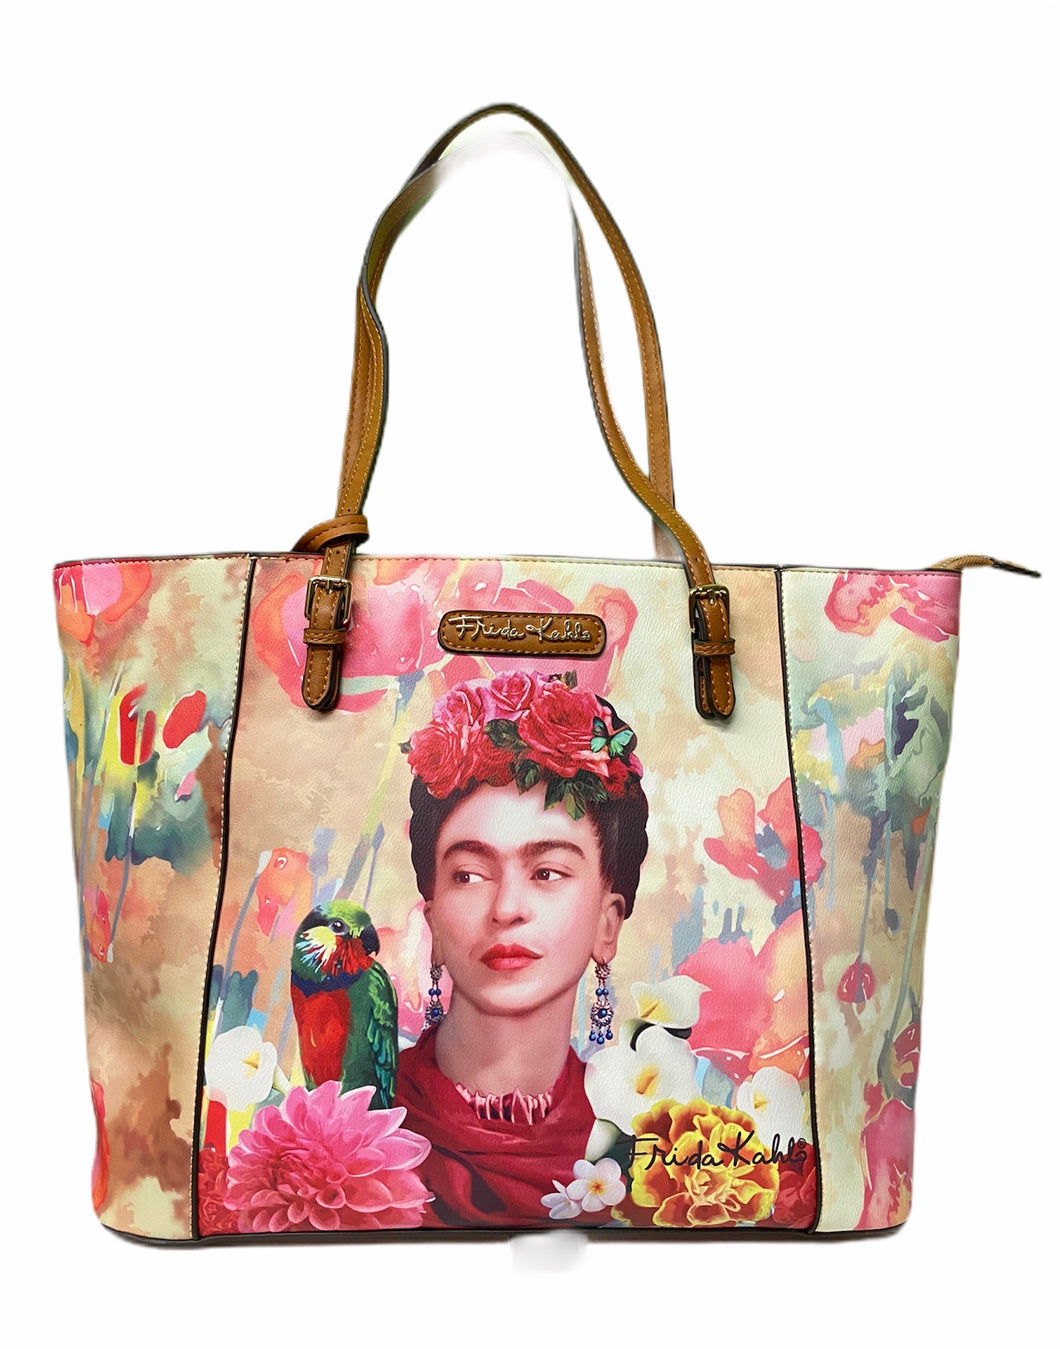 frida kahlo flowers large tote with a small wallet -alwaysspecialgifts.com